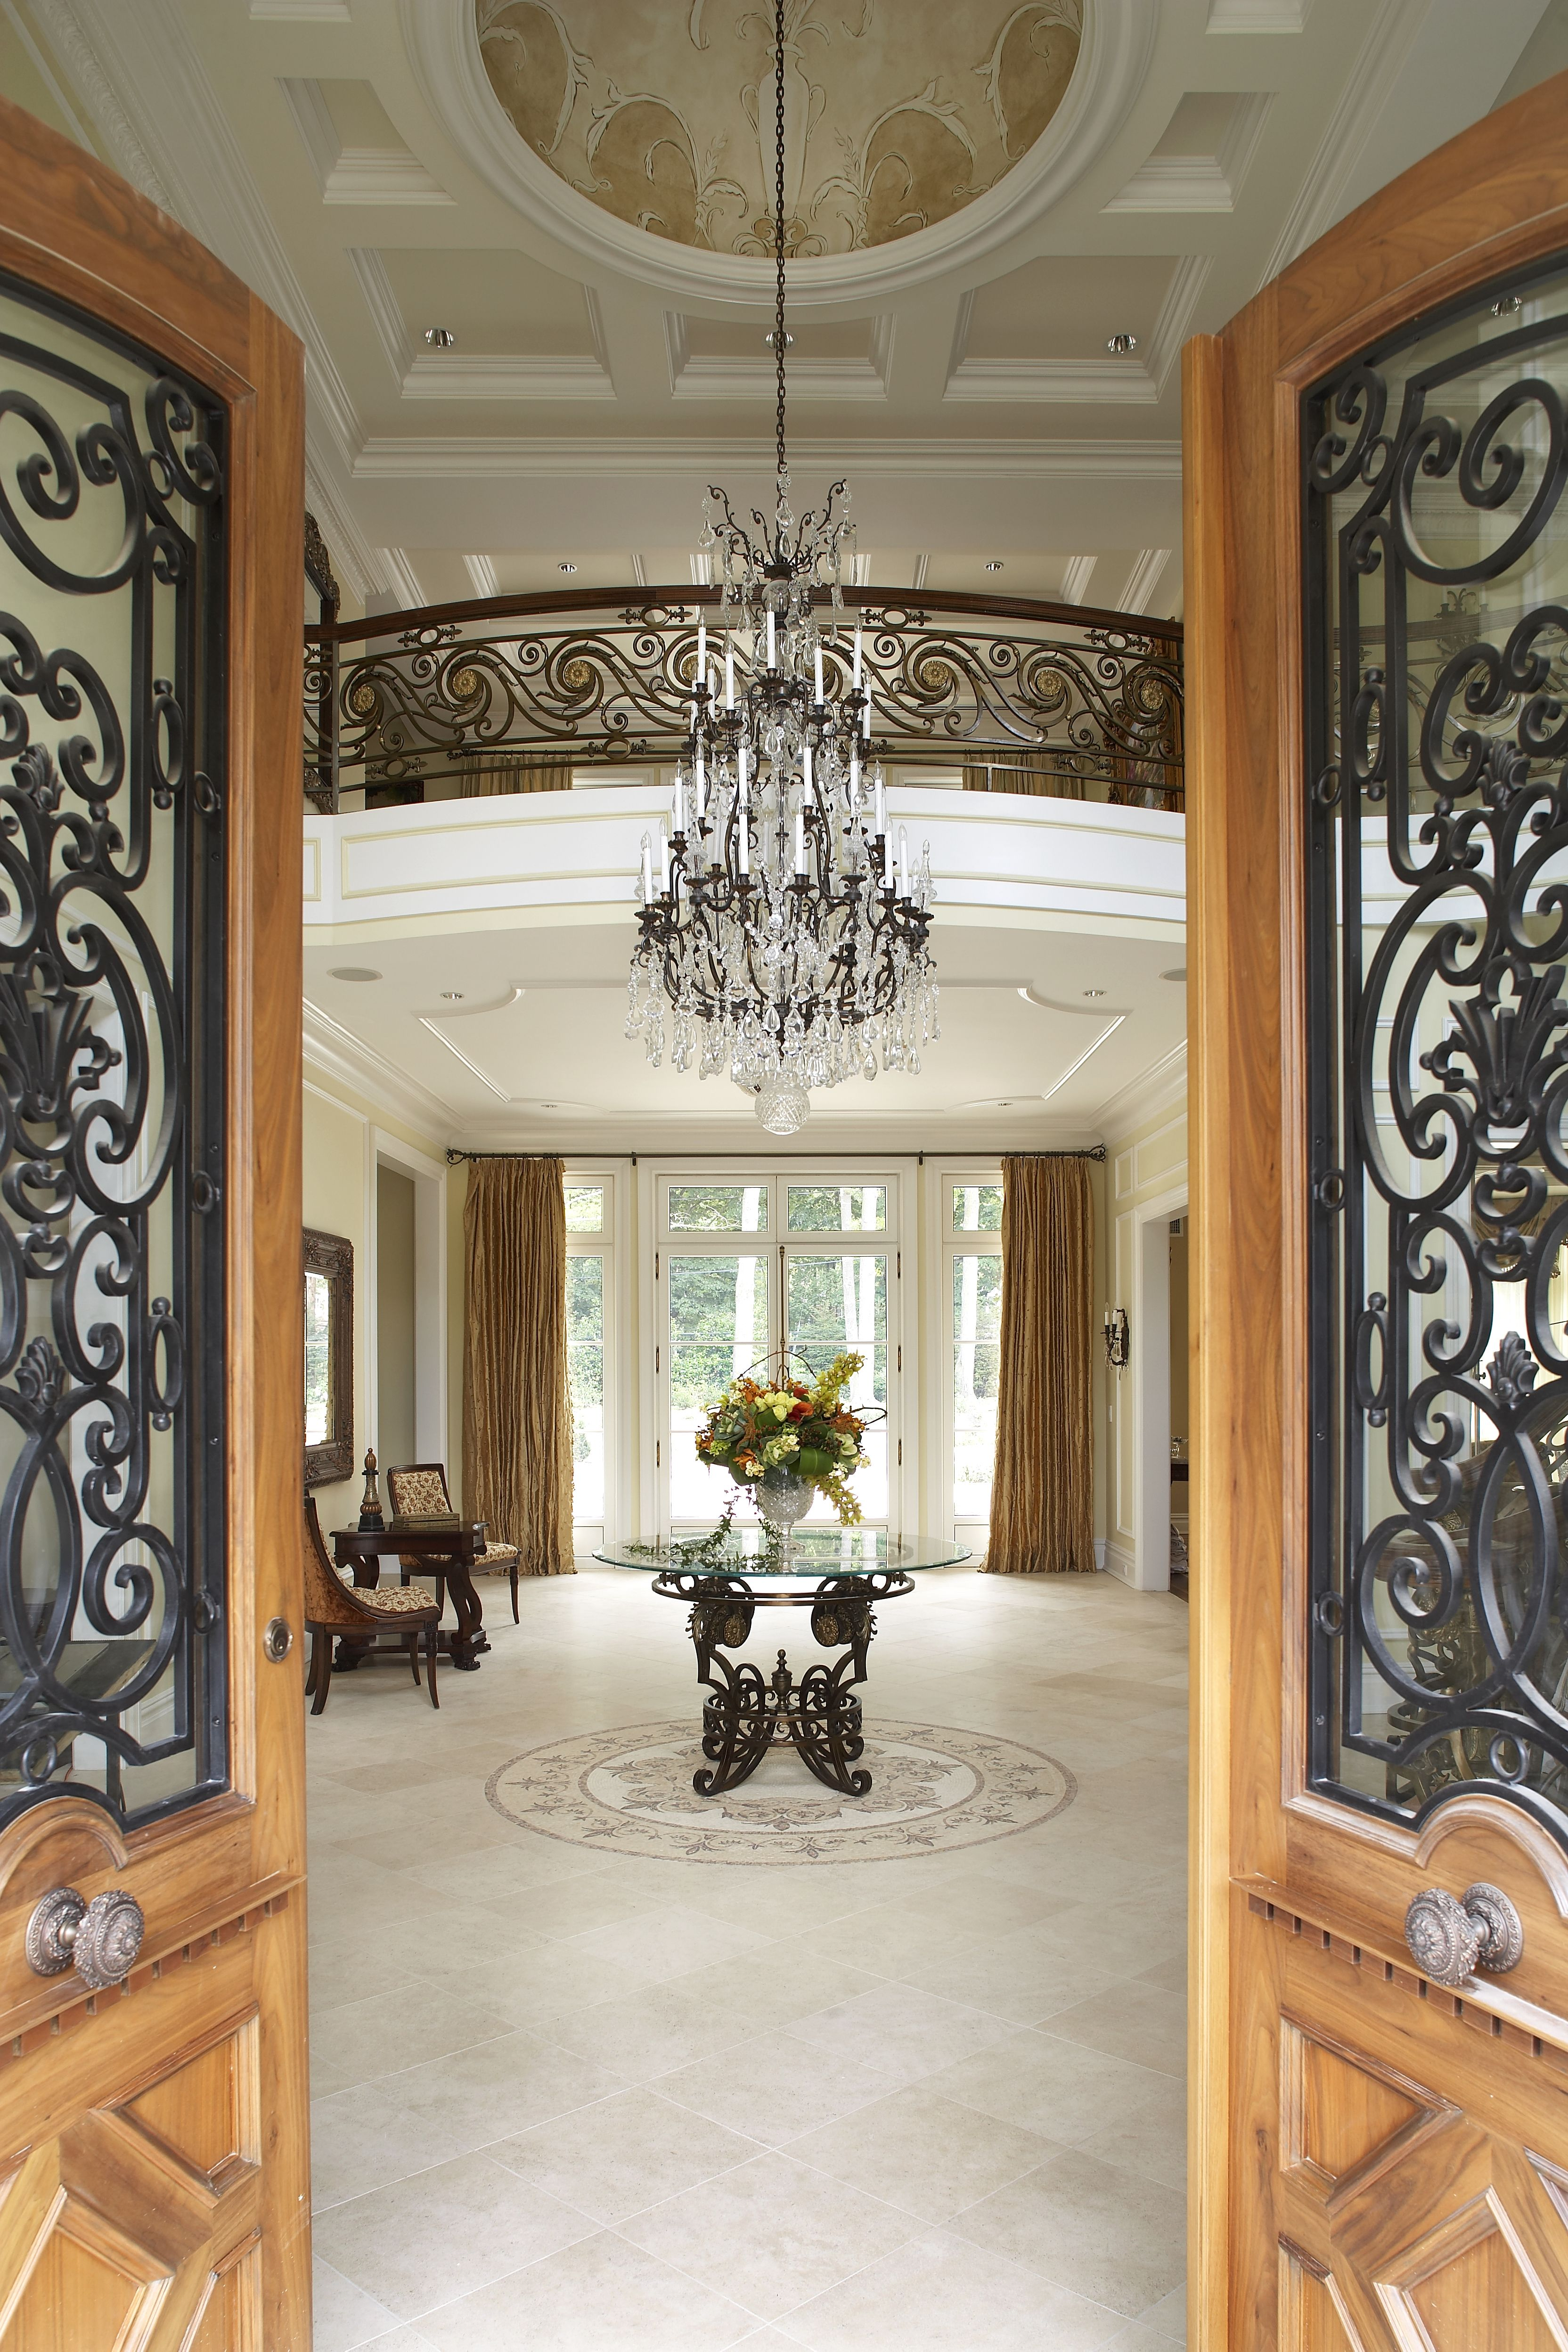 entry foyer table. Luxury Entryway Decors With Glass Chandelier Over Antique Foyer Table As Well Great Half Swing Entry Door Designs #methodcandles #firstimpressions